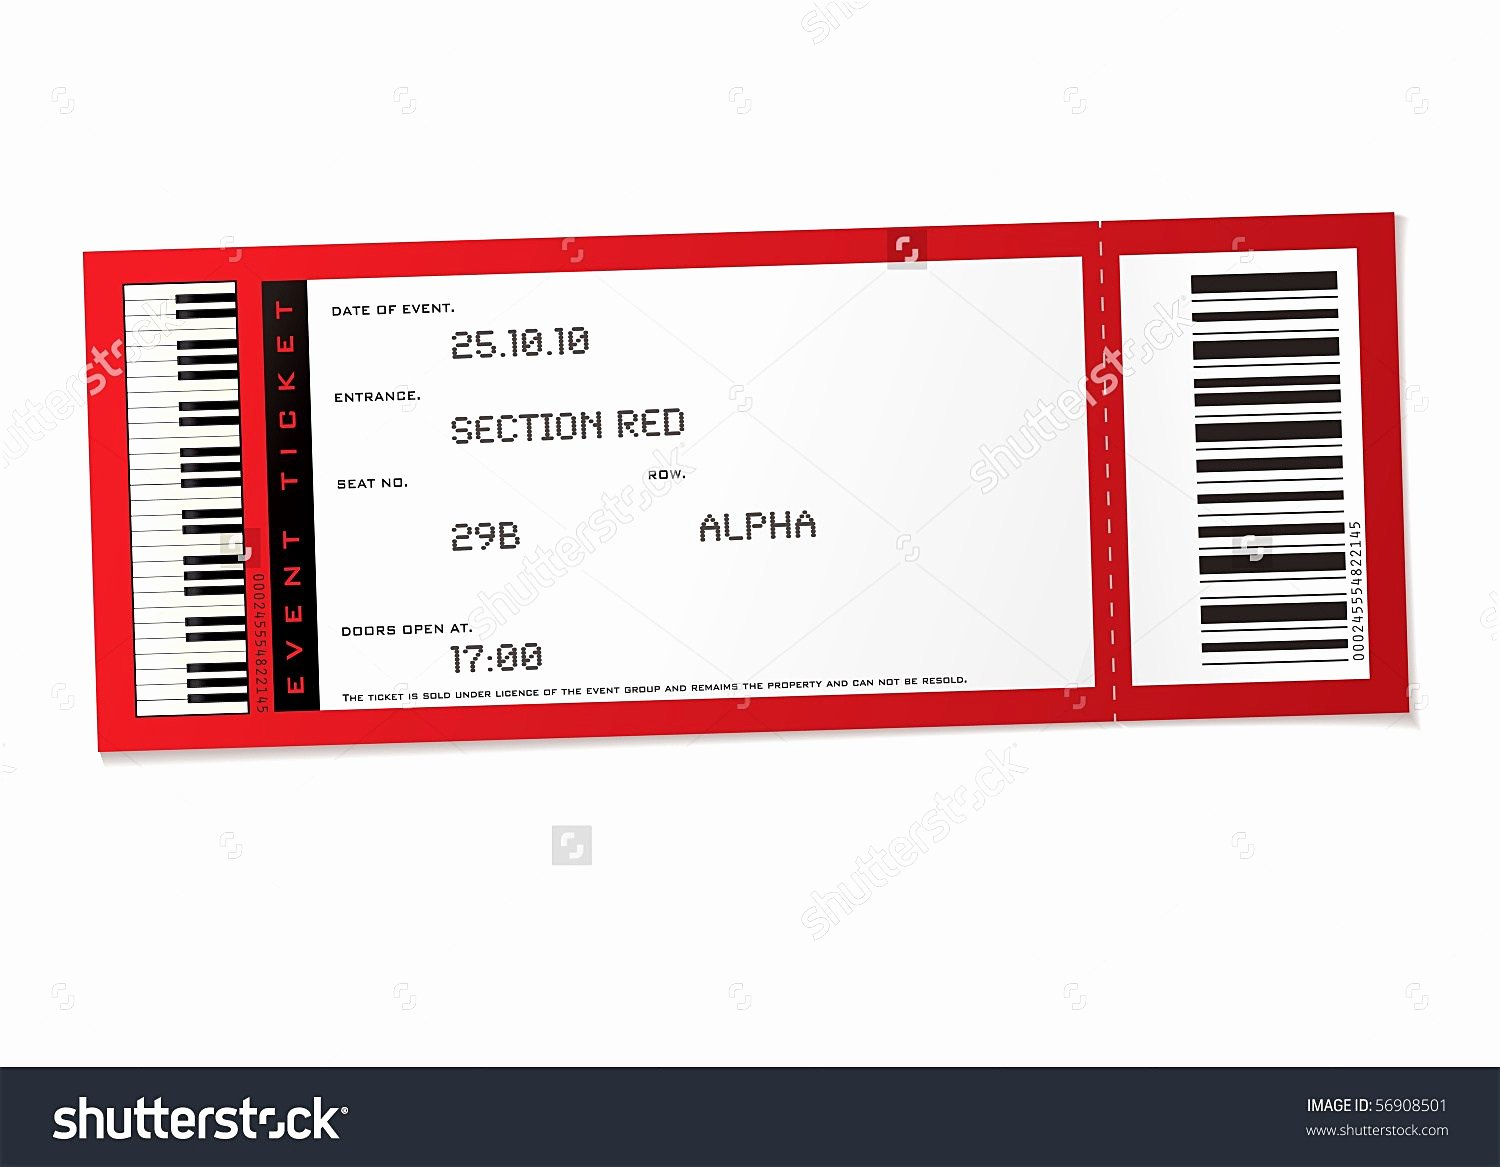 Free Concert Ticket Template Awesome event Ticket Template Example Mughals